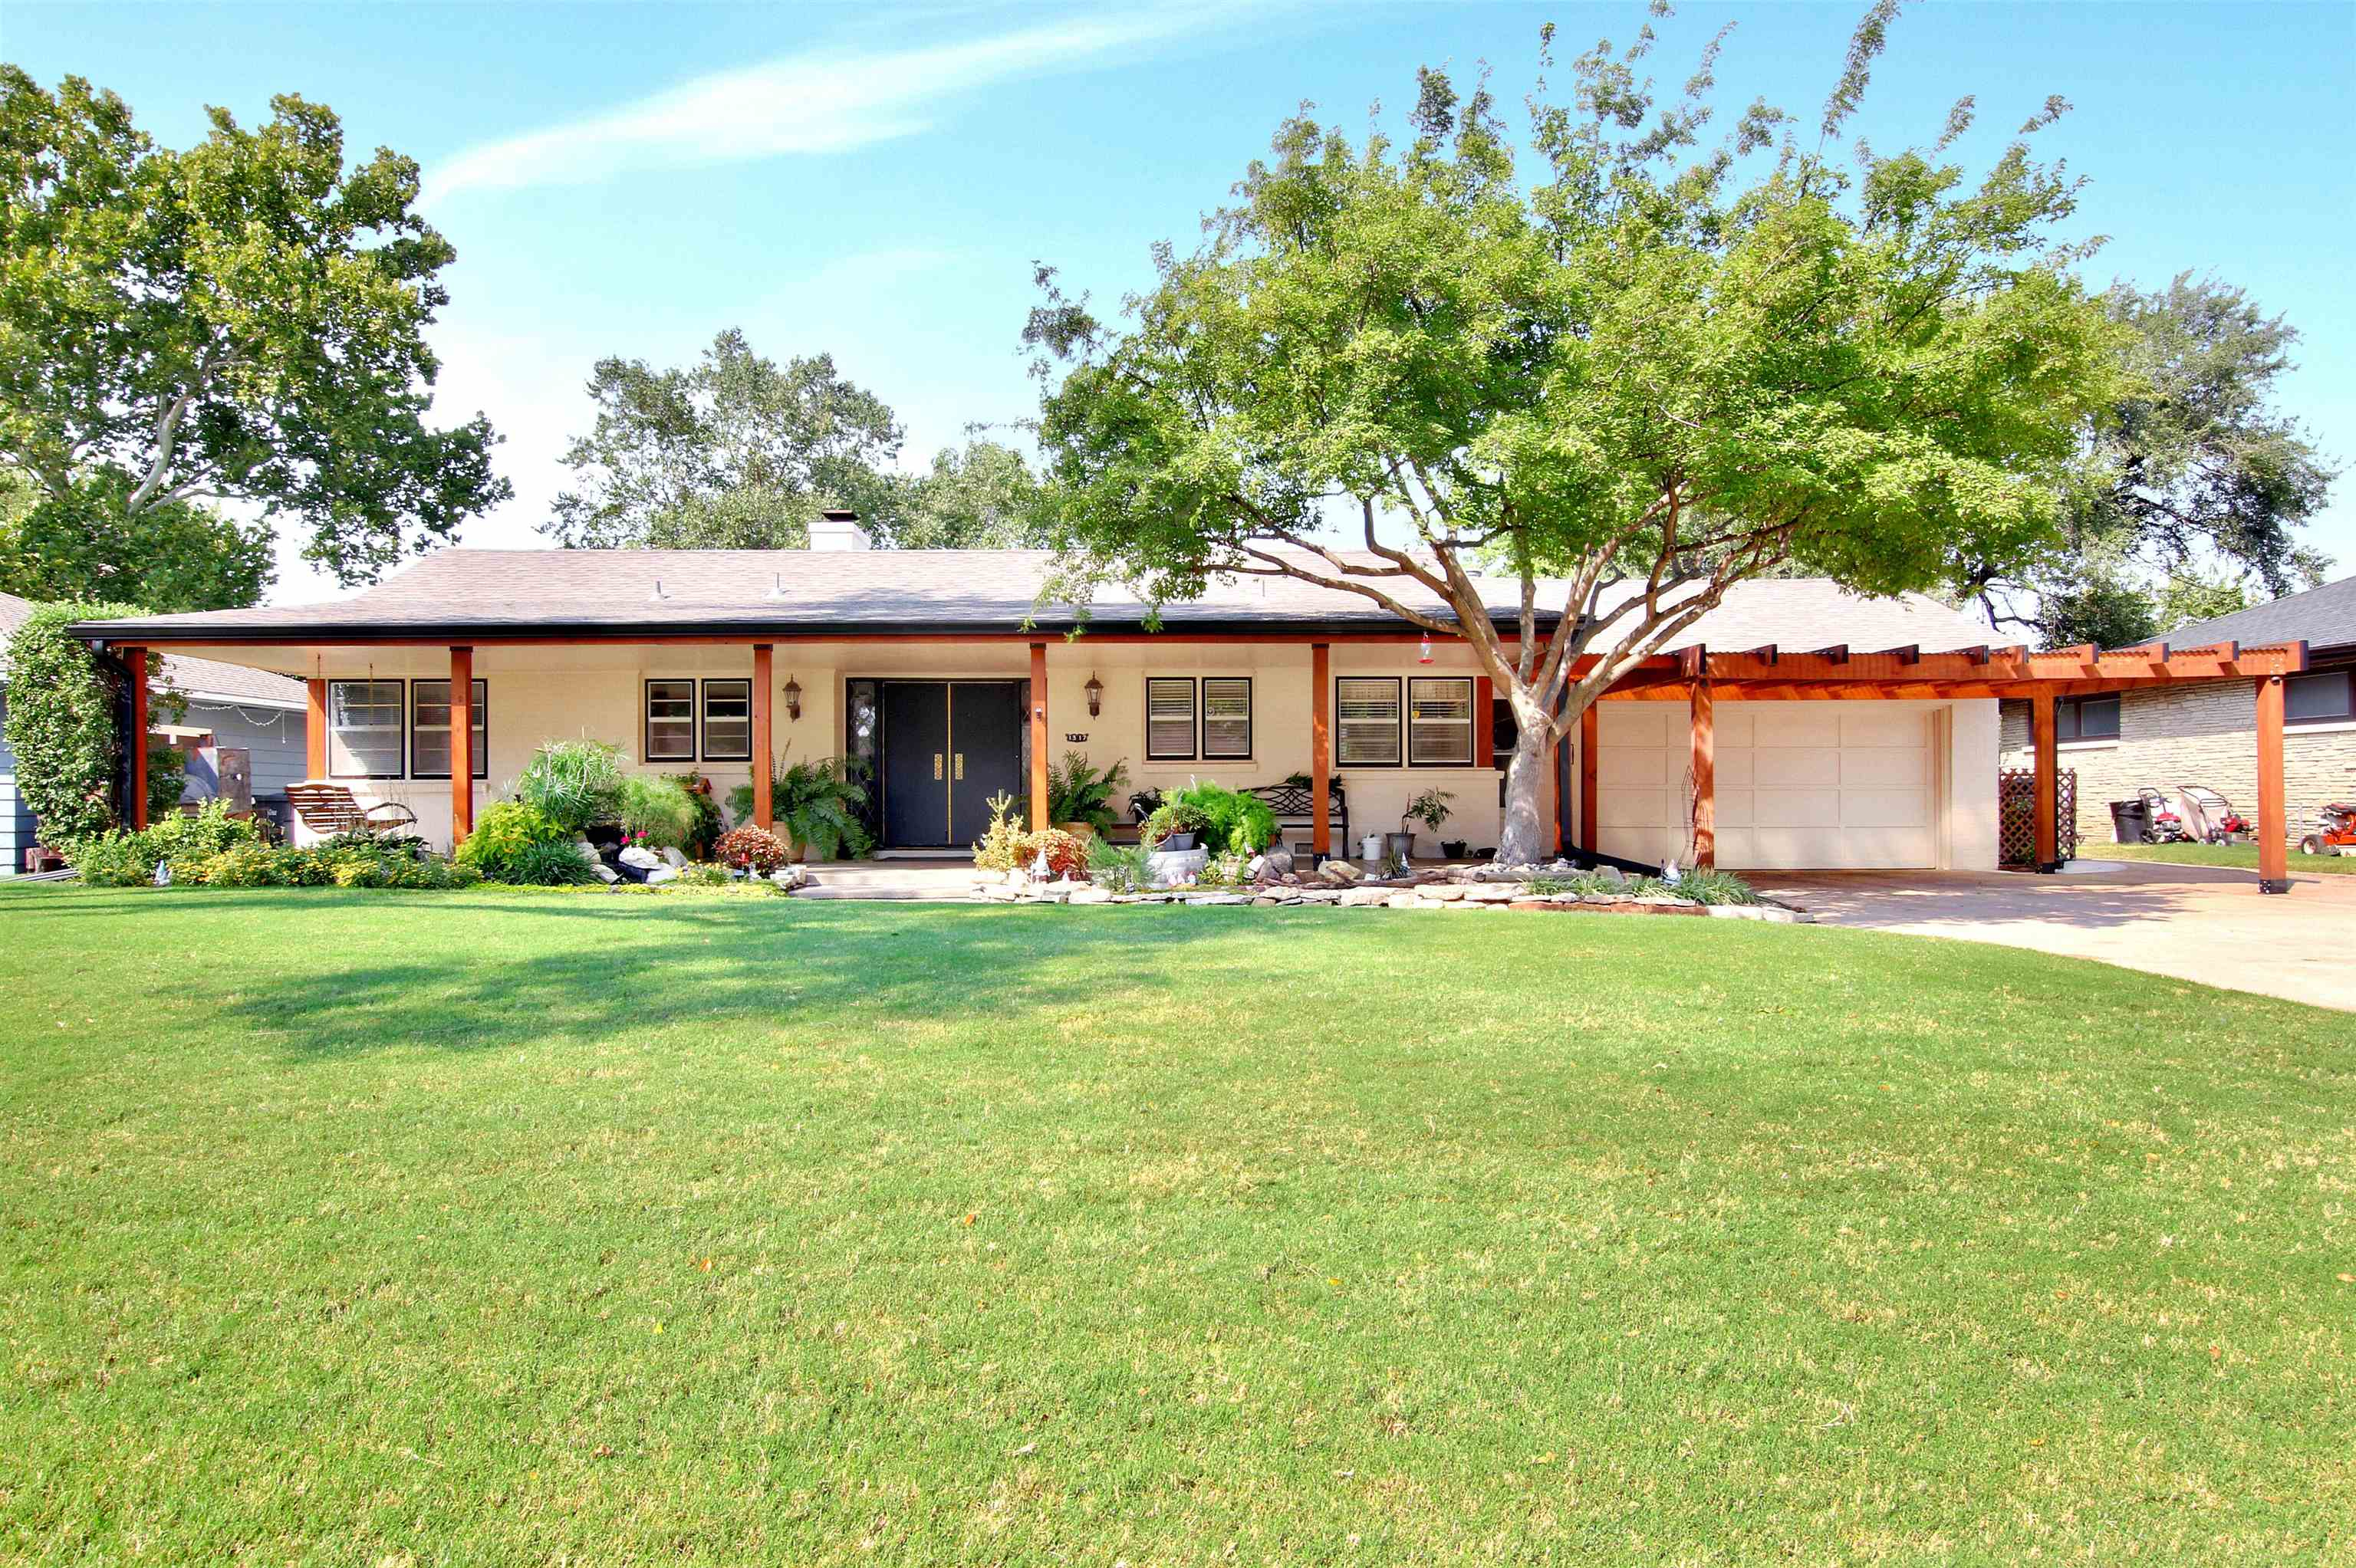 You won't want to miss this listing!  The home has original, mid century features that have been wel